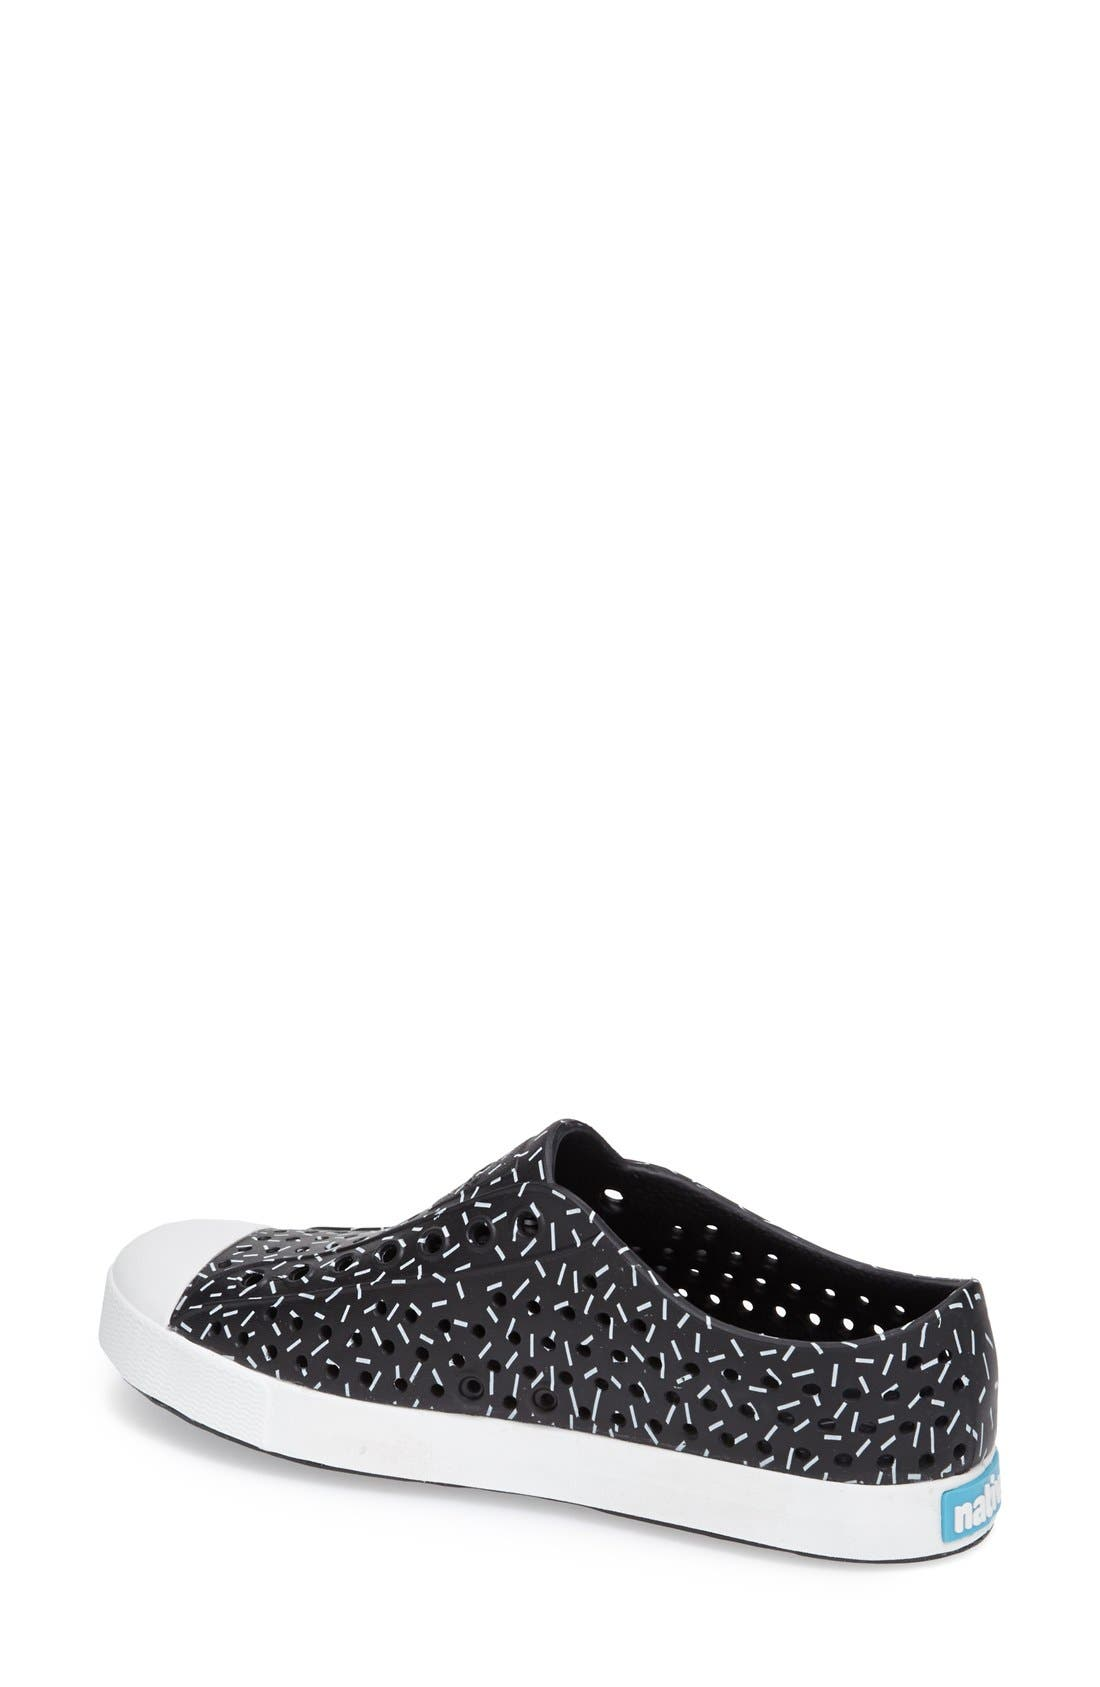 'Jefferson' Printed Slip-On Sneaker,                             Alternate thumbnail 5, color,